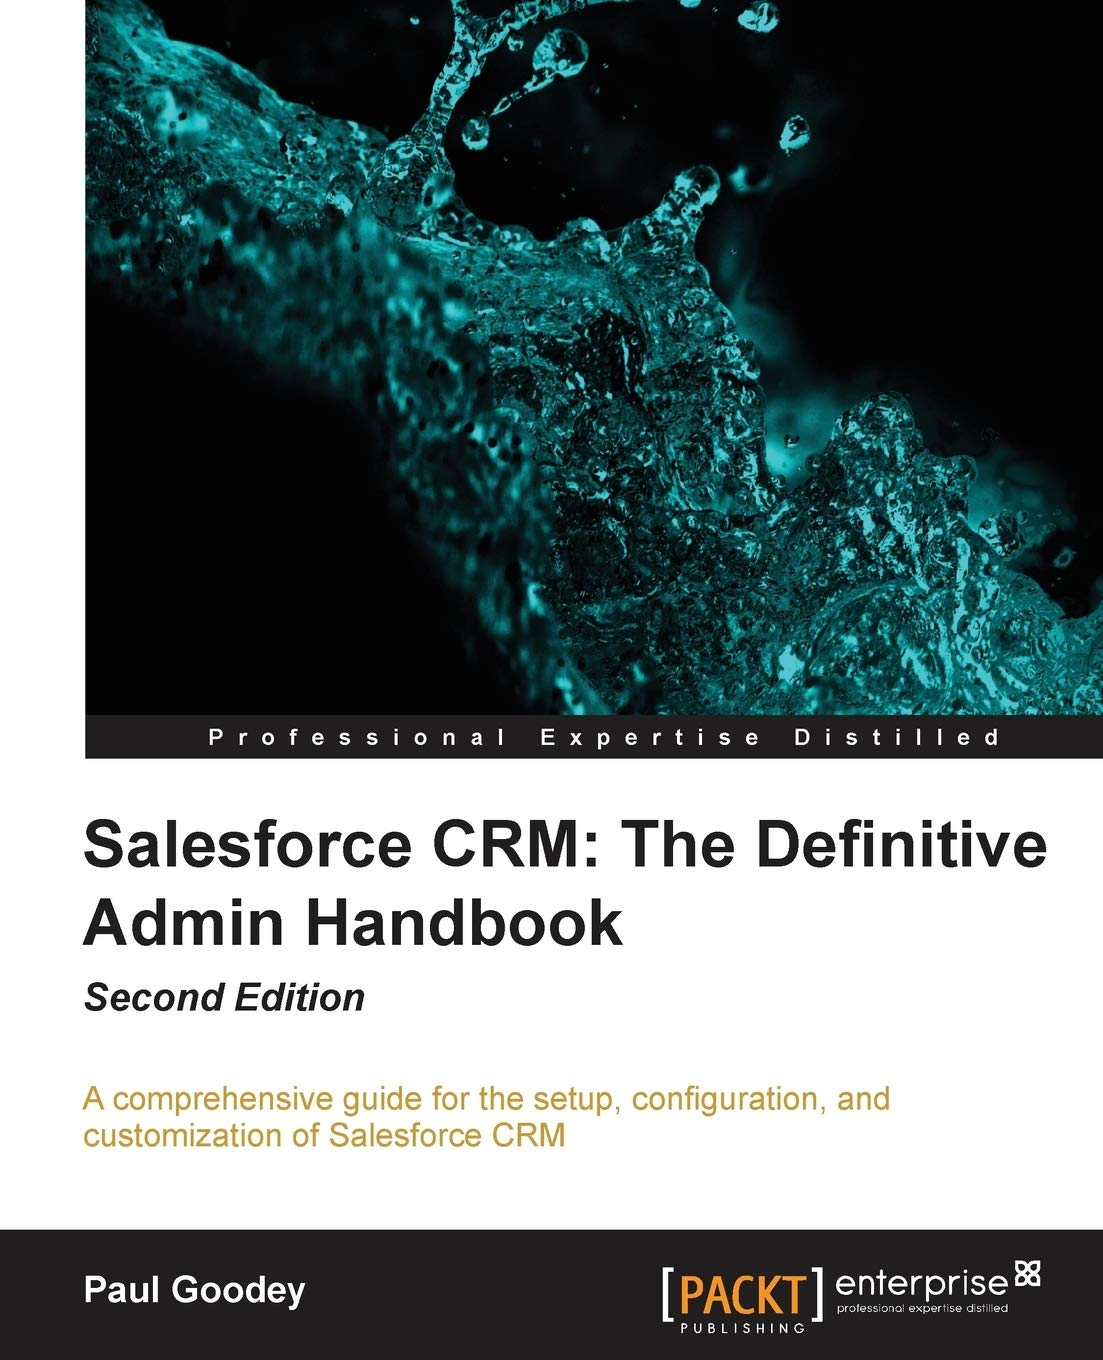 Salesforce CRM: The Definitive Admin Handbook: The Definitive Admin Handbook – Second Edition: Salesforce CRM is a web-based Customer Relationship … service, administrators of all levels can ea